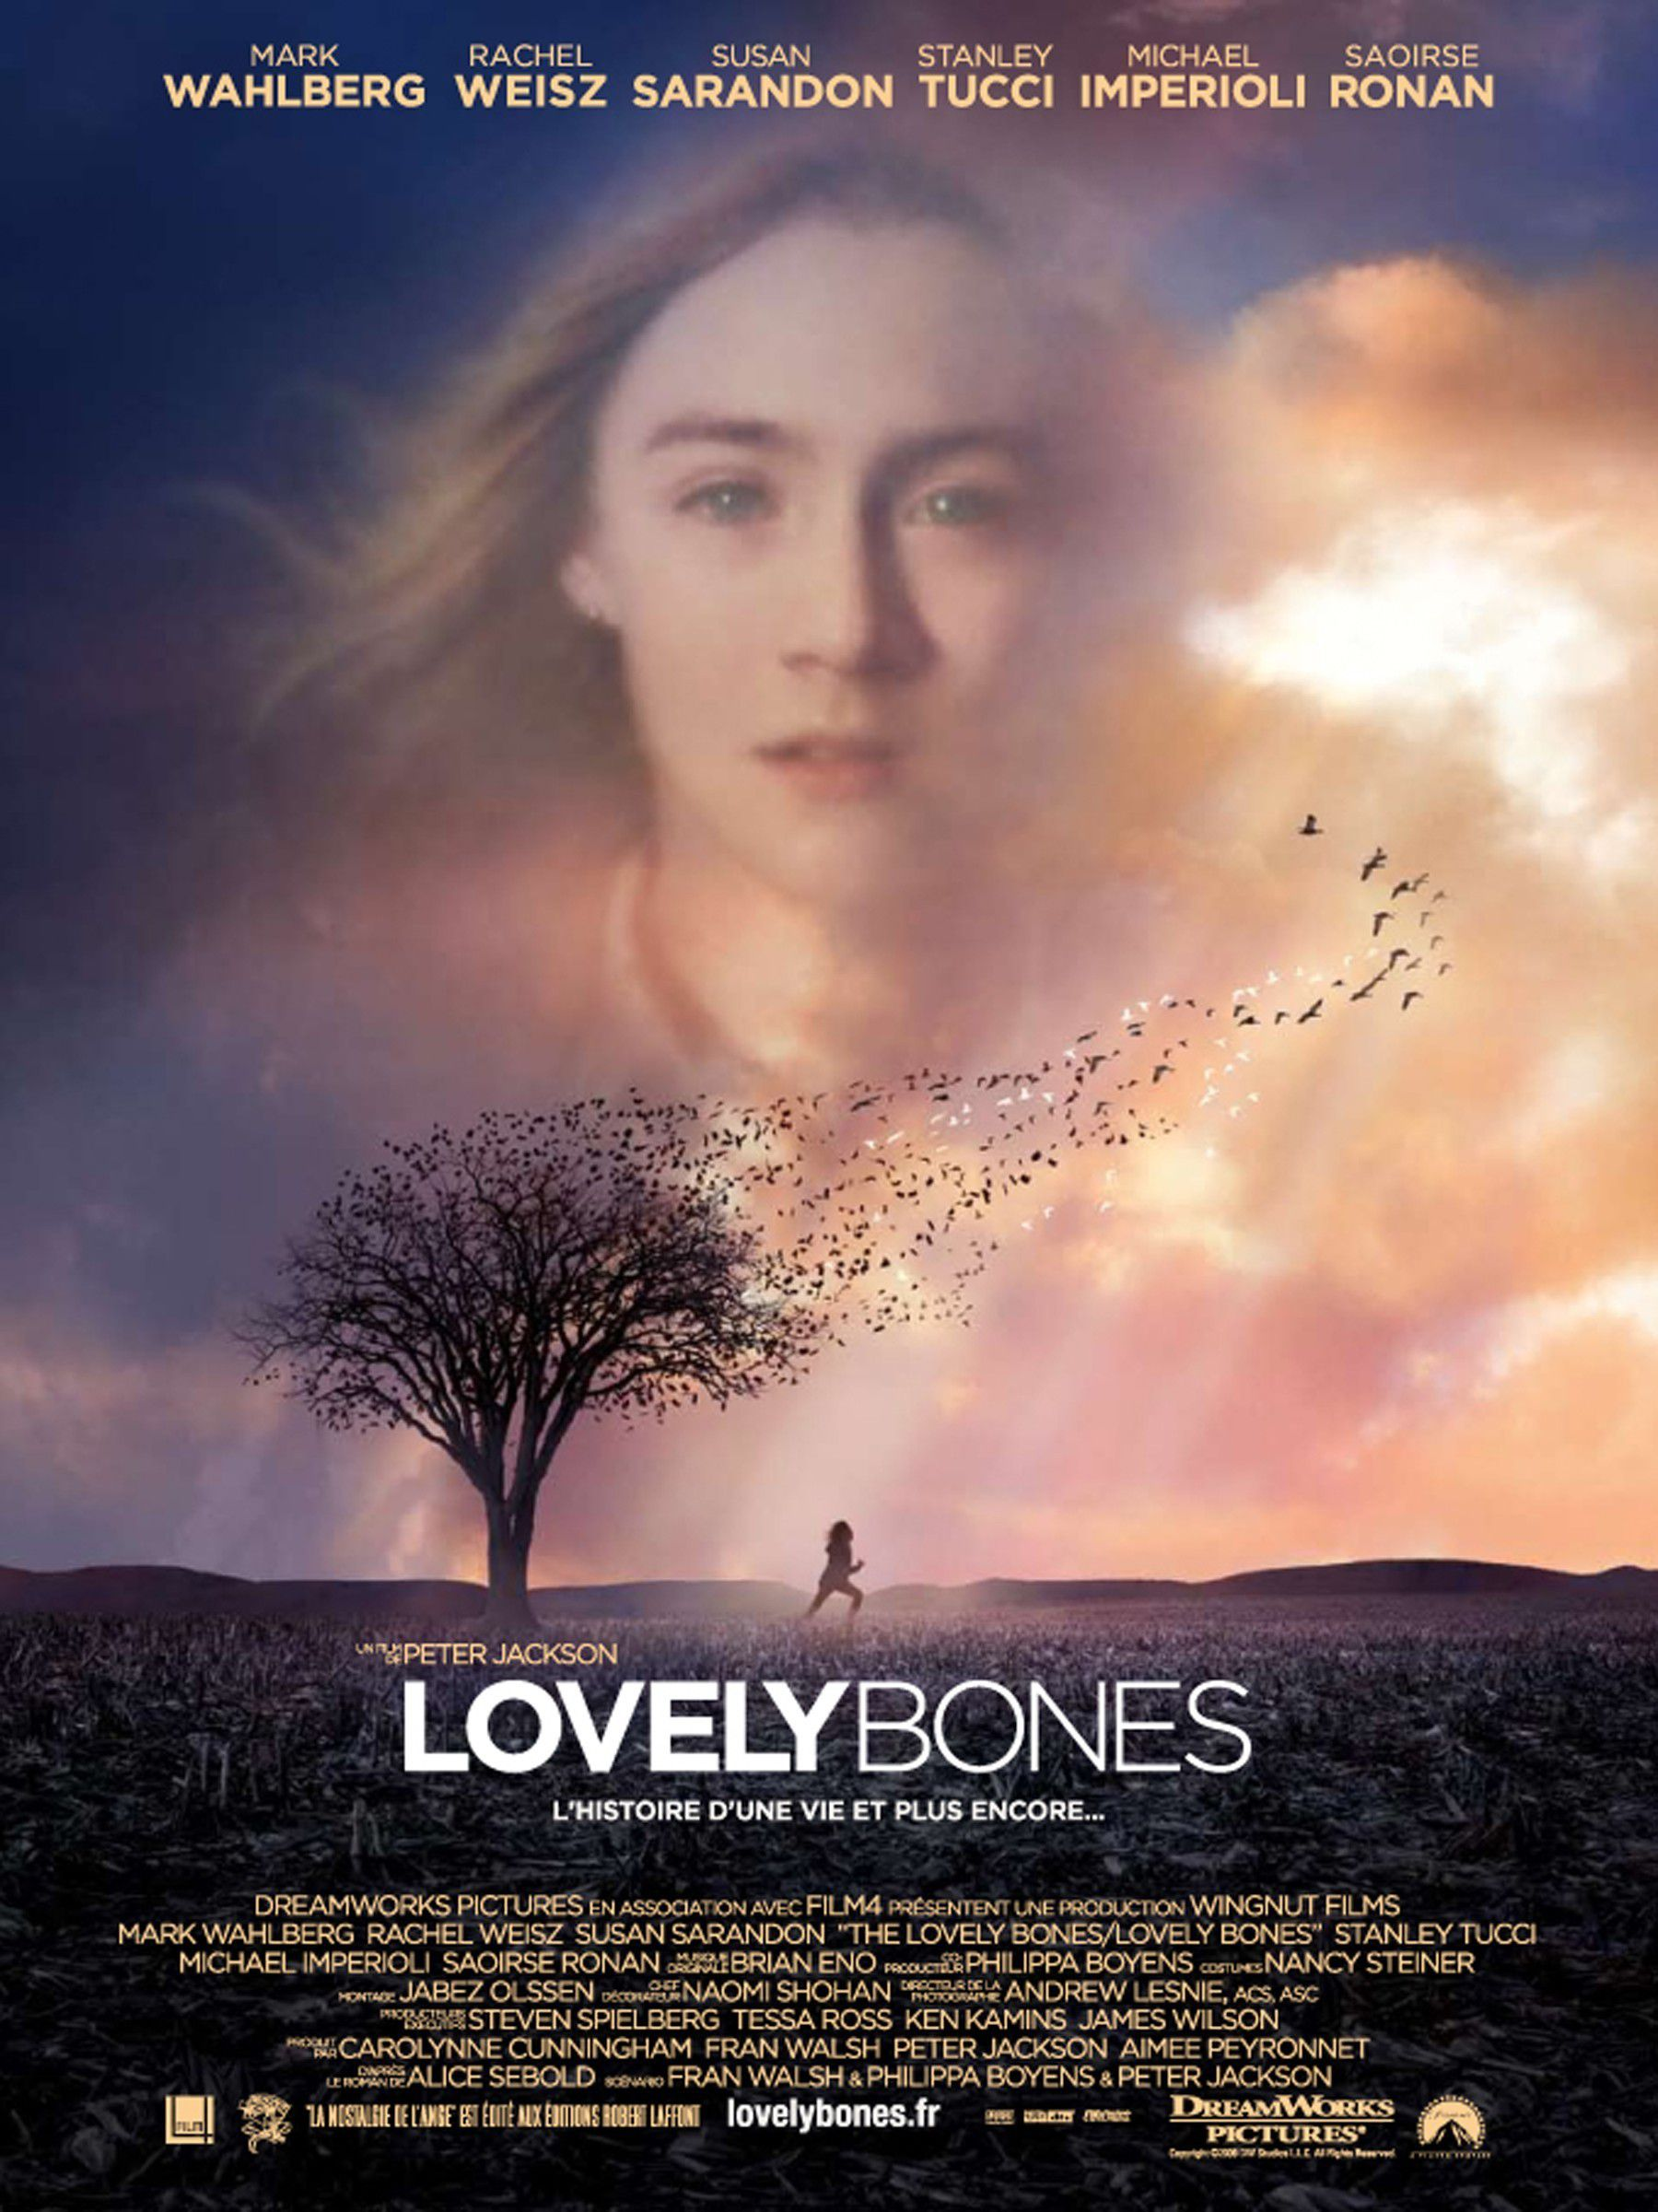 Lovely Bones - Film (2009) streaming VF gratuit complet